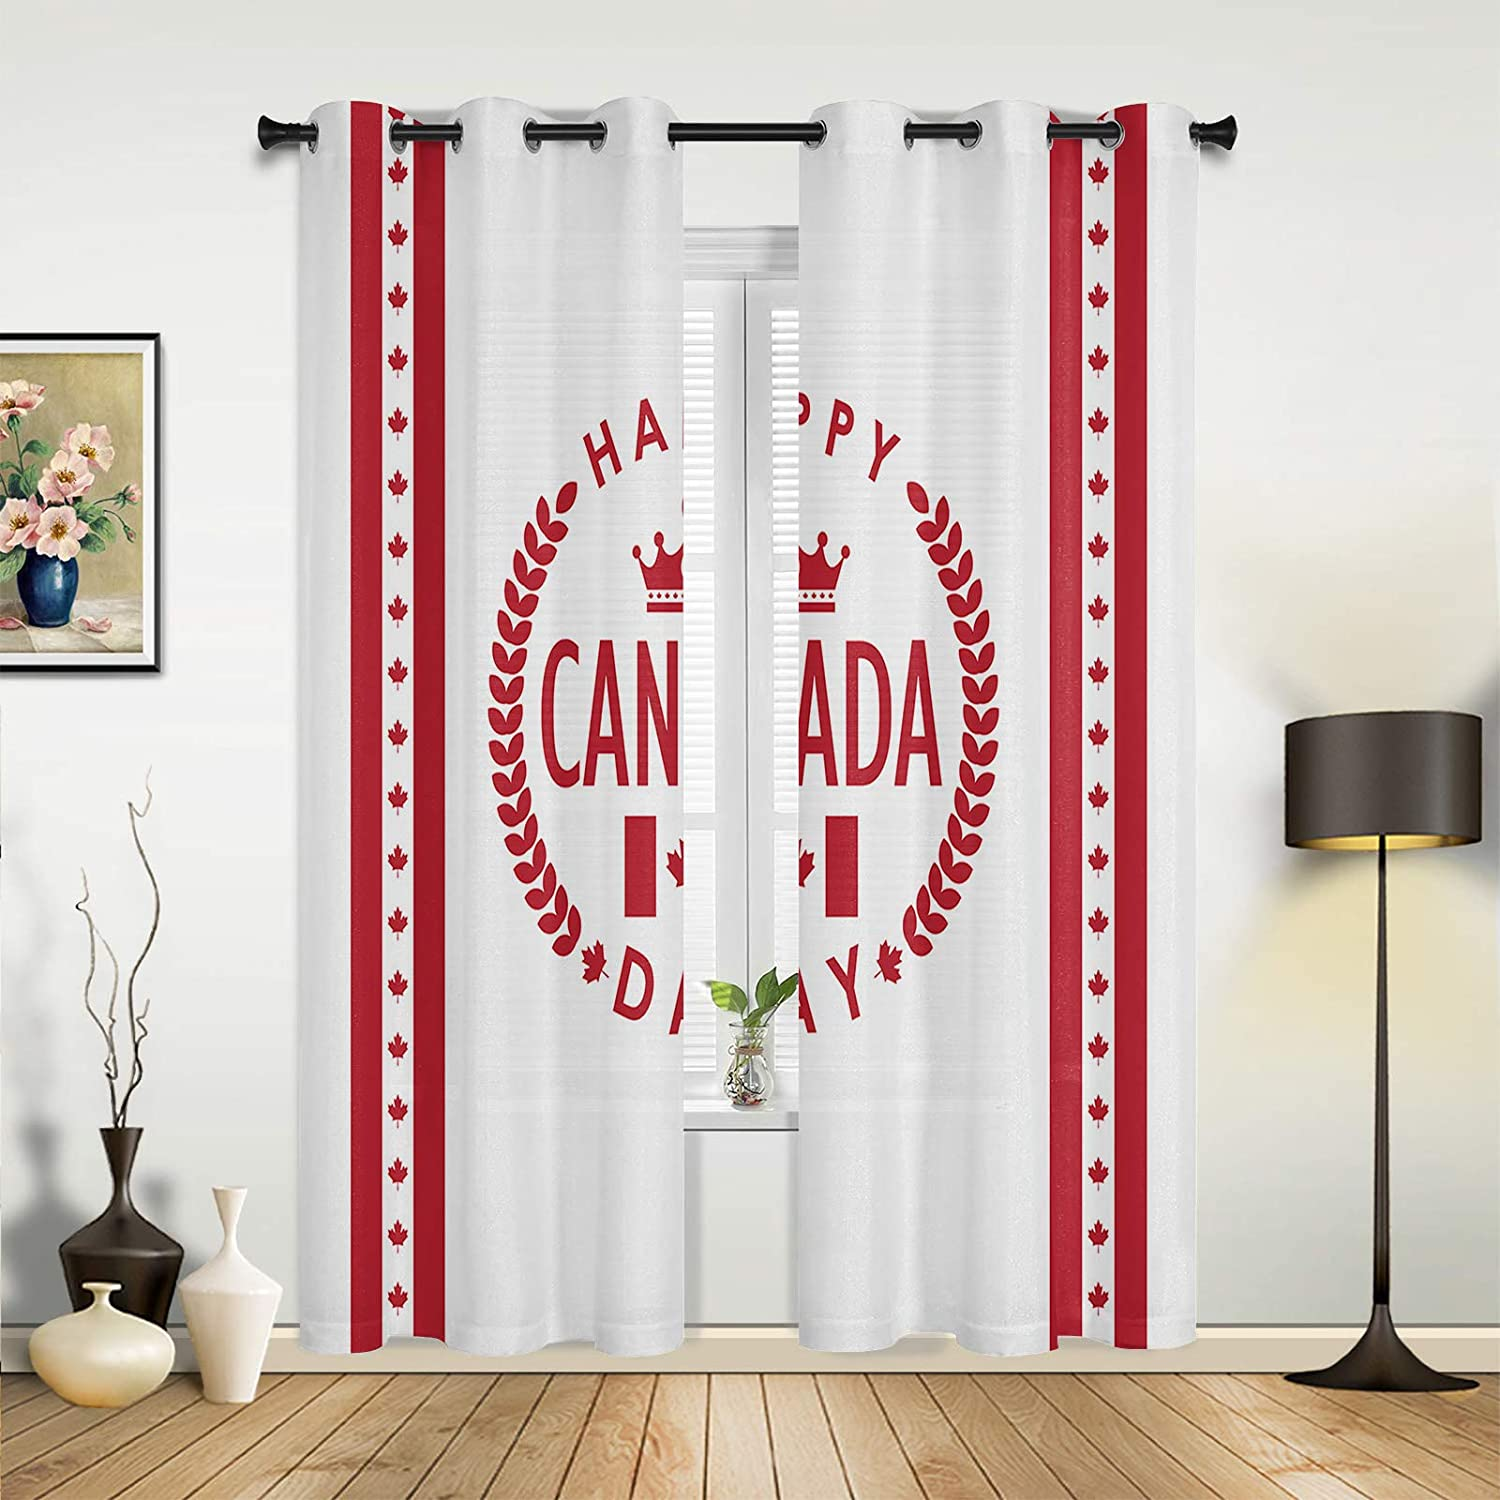 Window Sheer Curtains for 2021 new Bedroom National products Living Canada Room Da